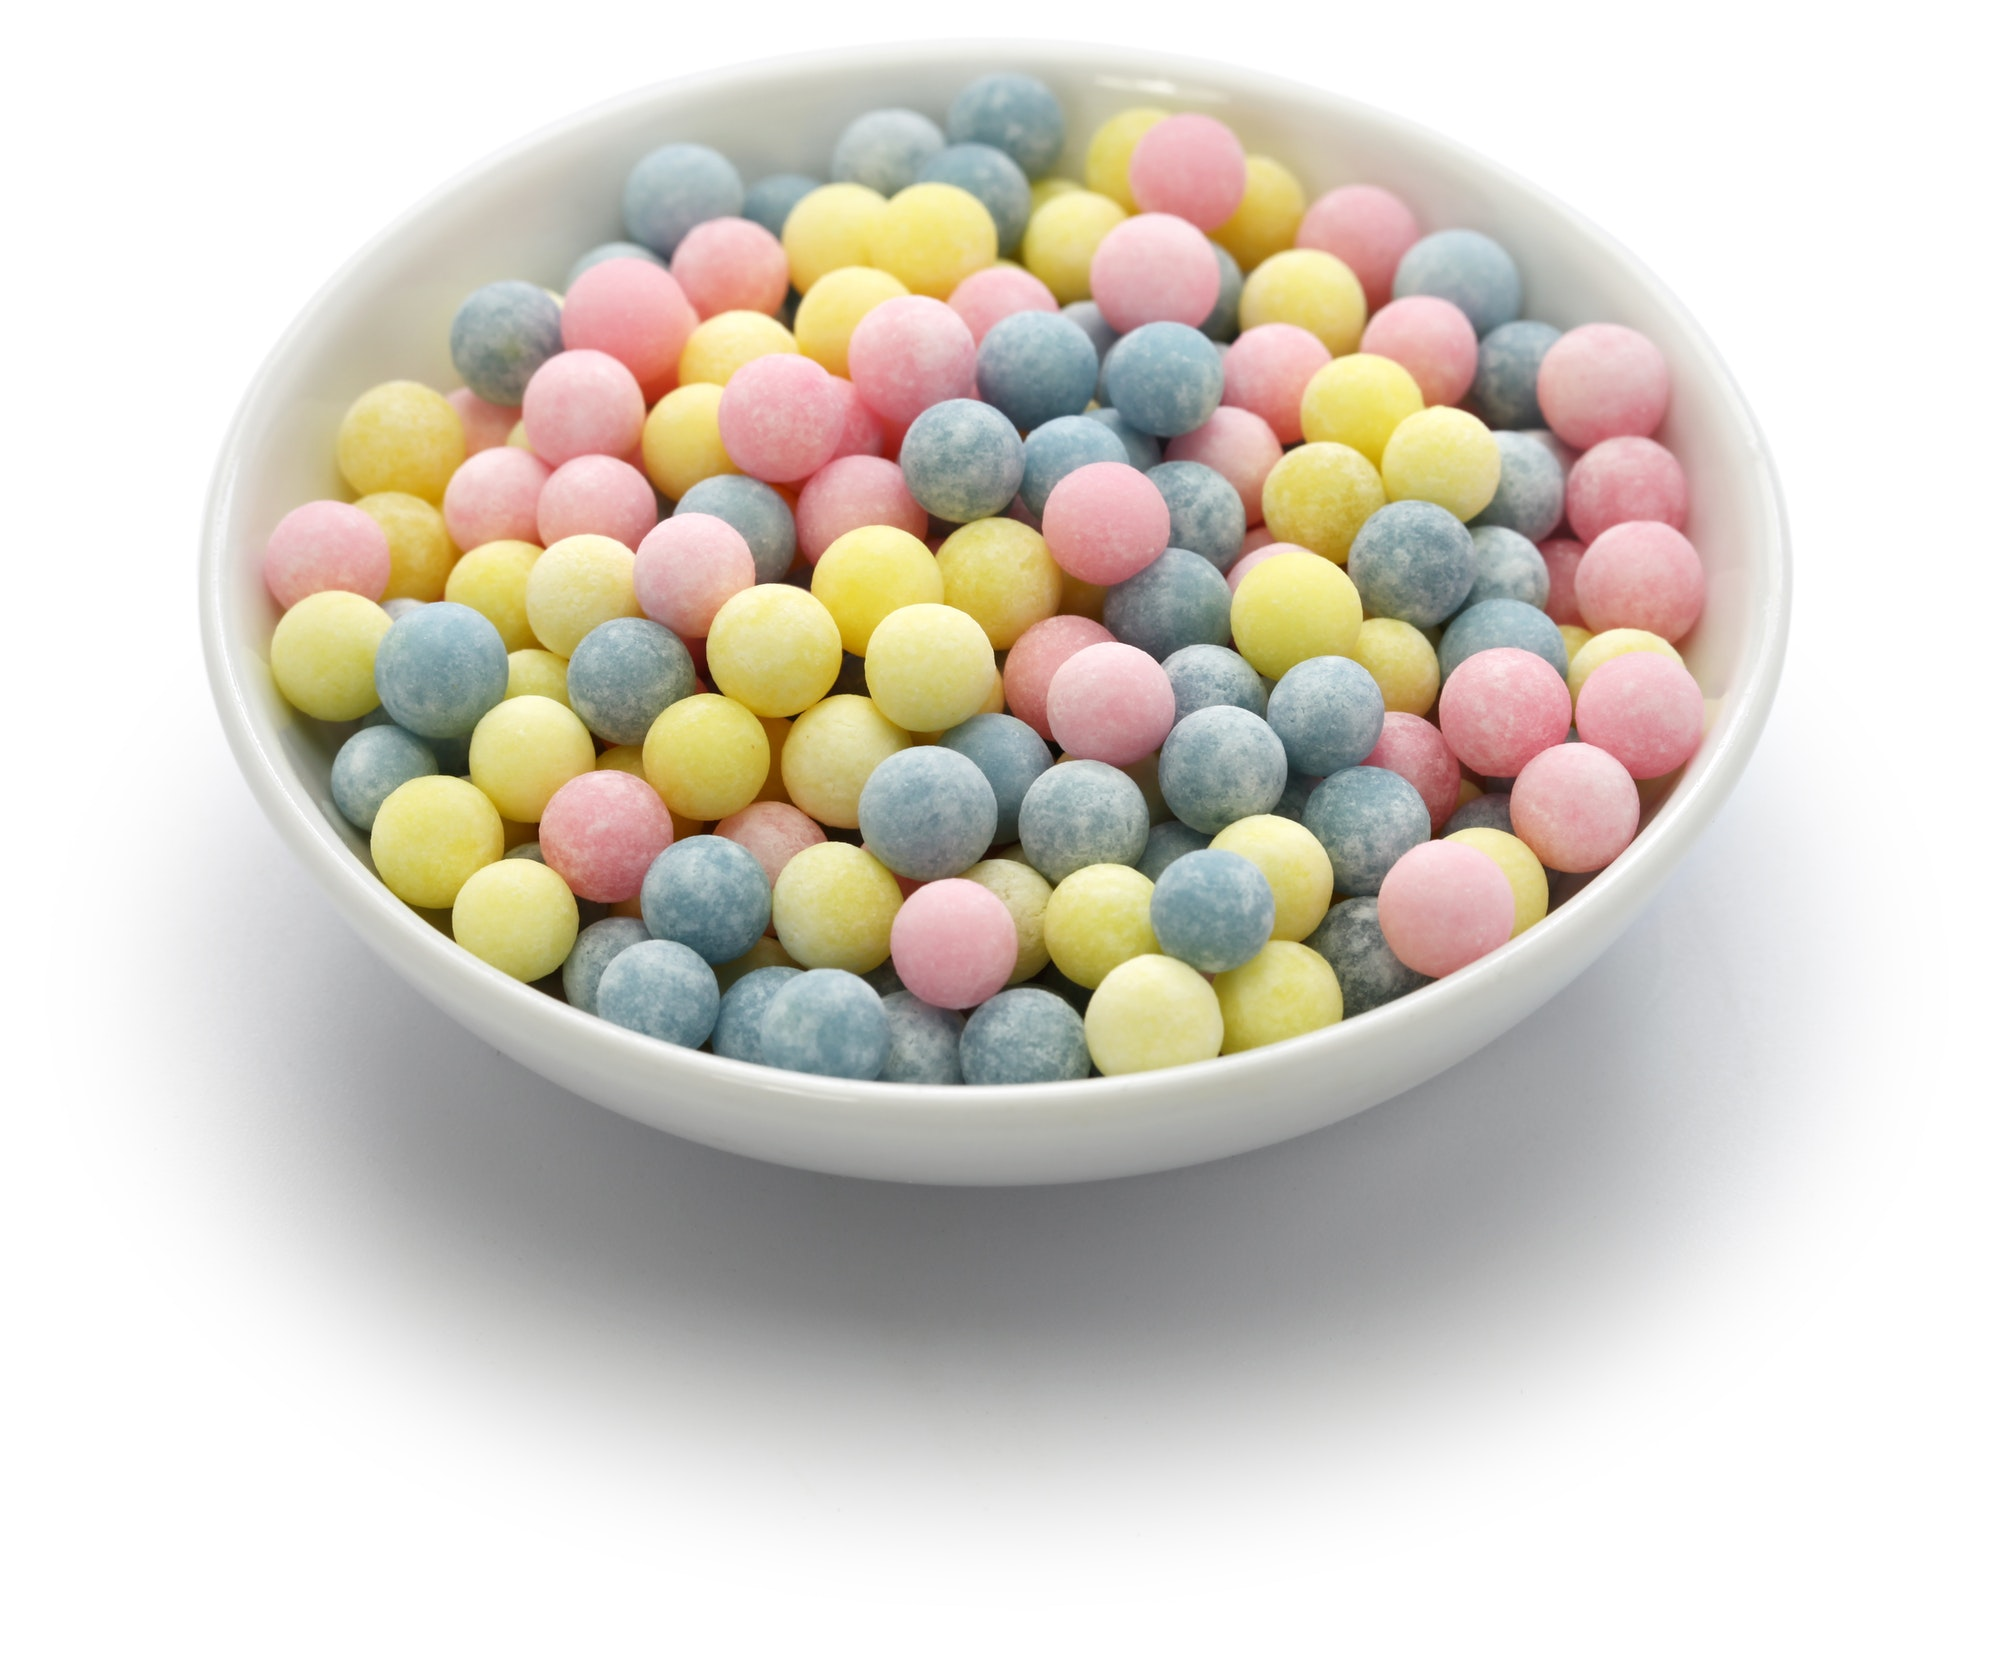 colored tapioca pearls